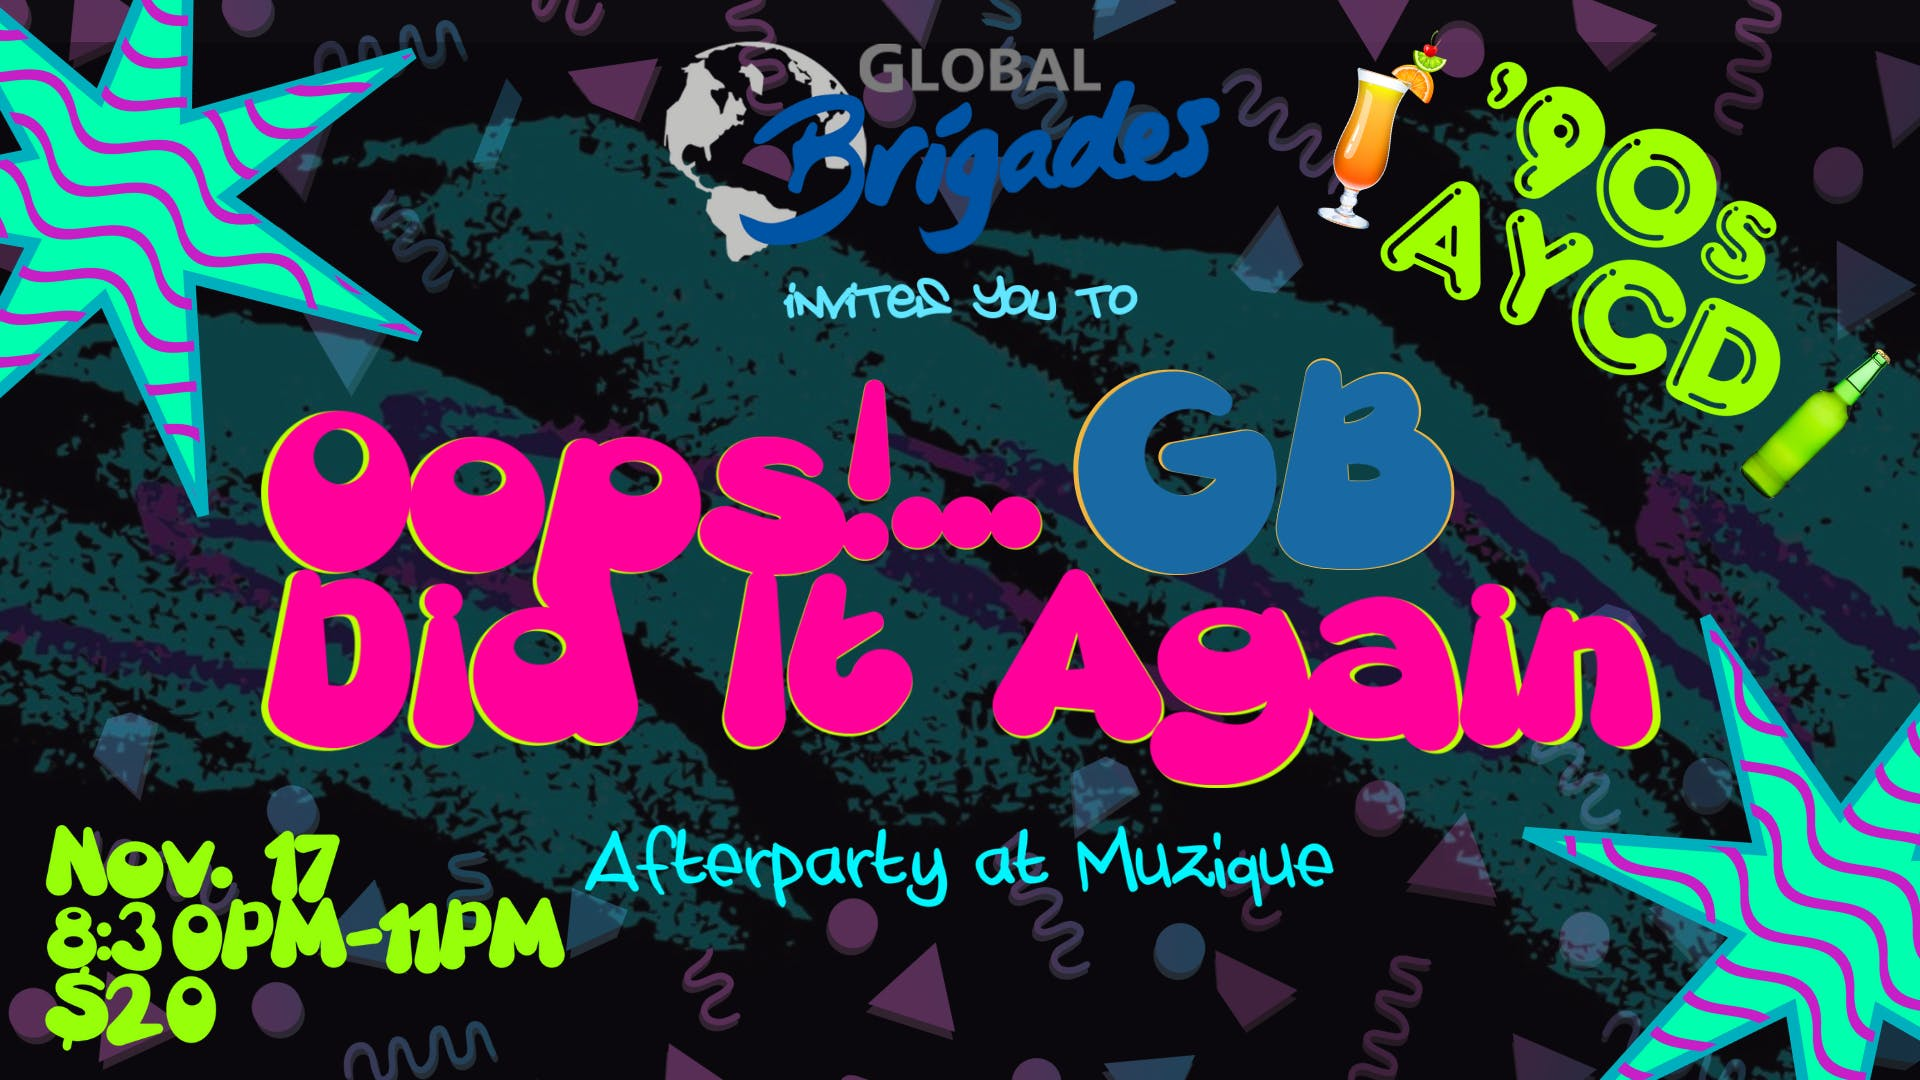 Oops ! GB did it again...back to the 90's AYC